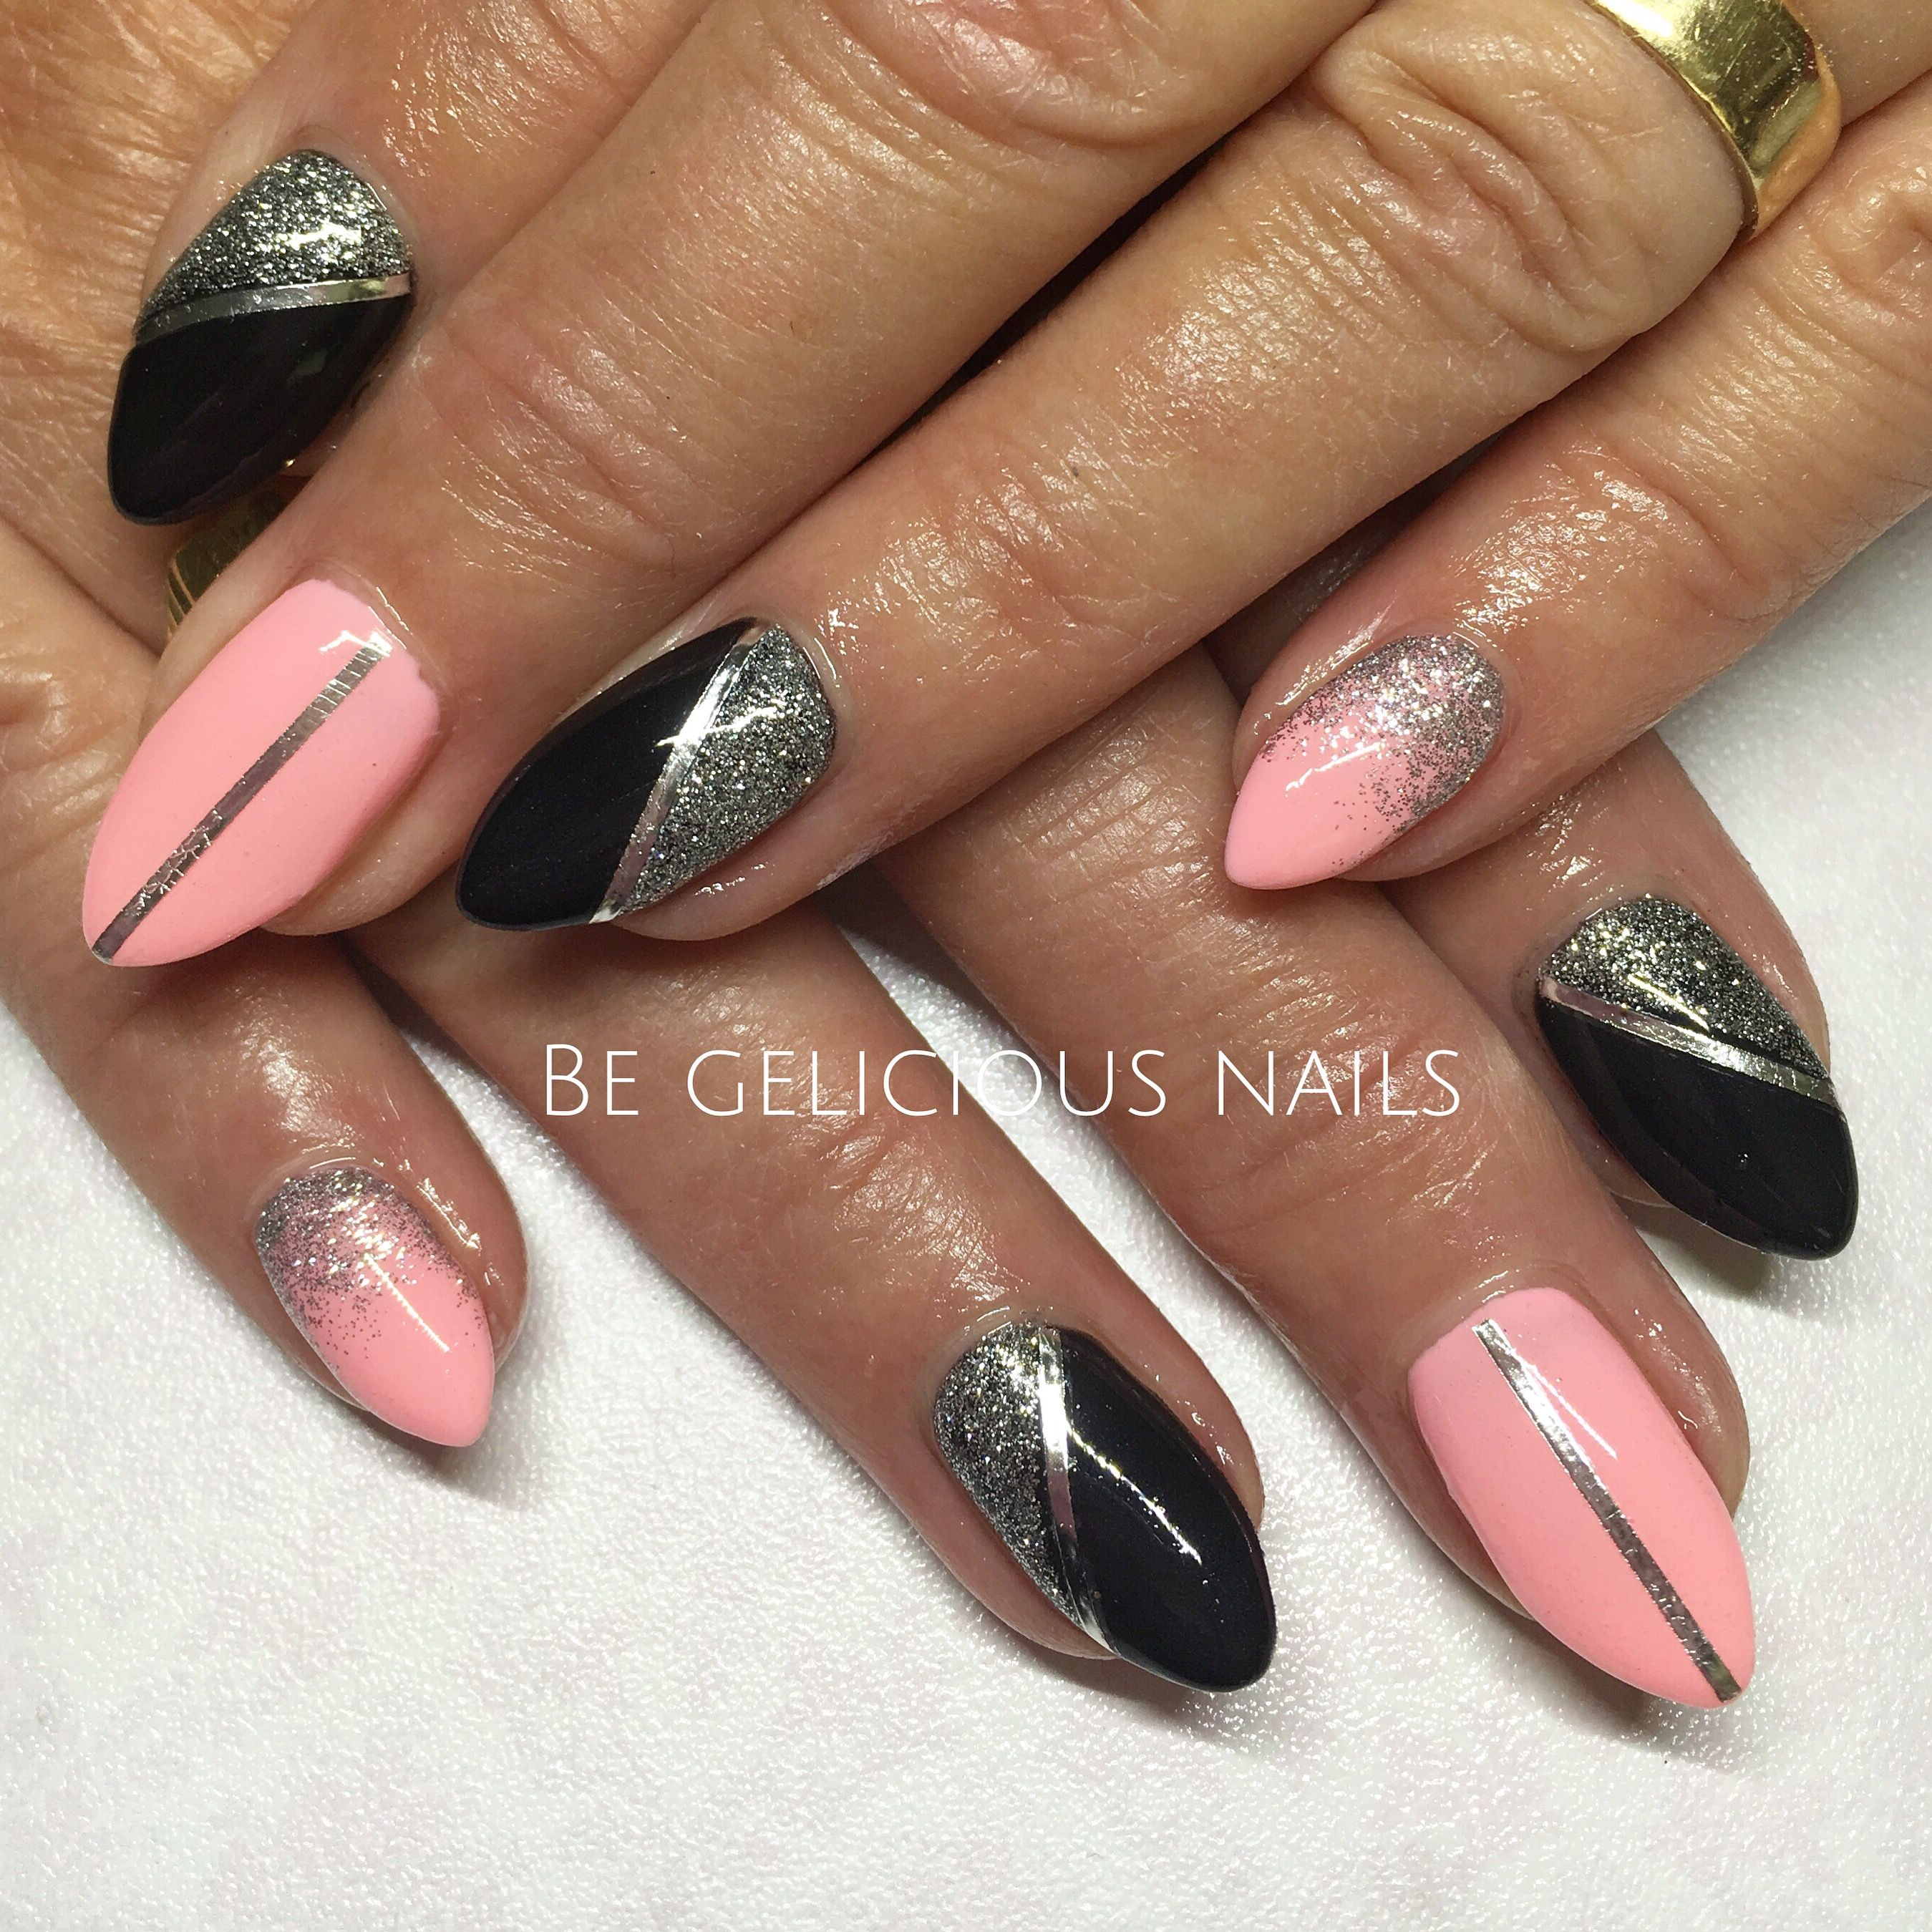 Calgel Nails Nail Art Nail Design Gel Pink Black Calgel